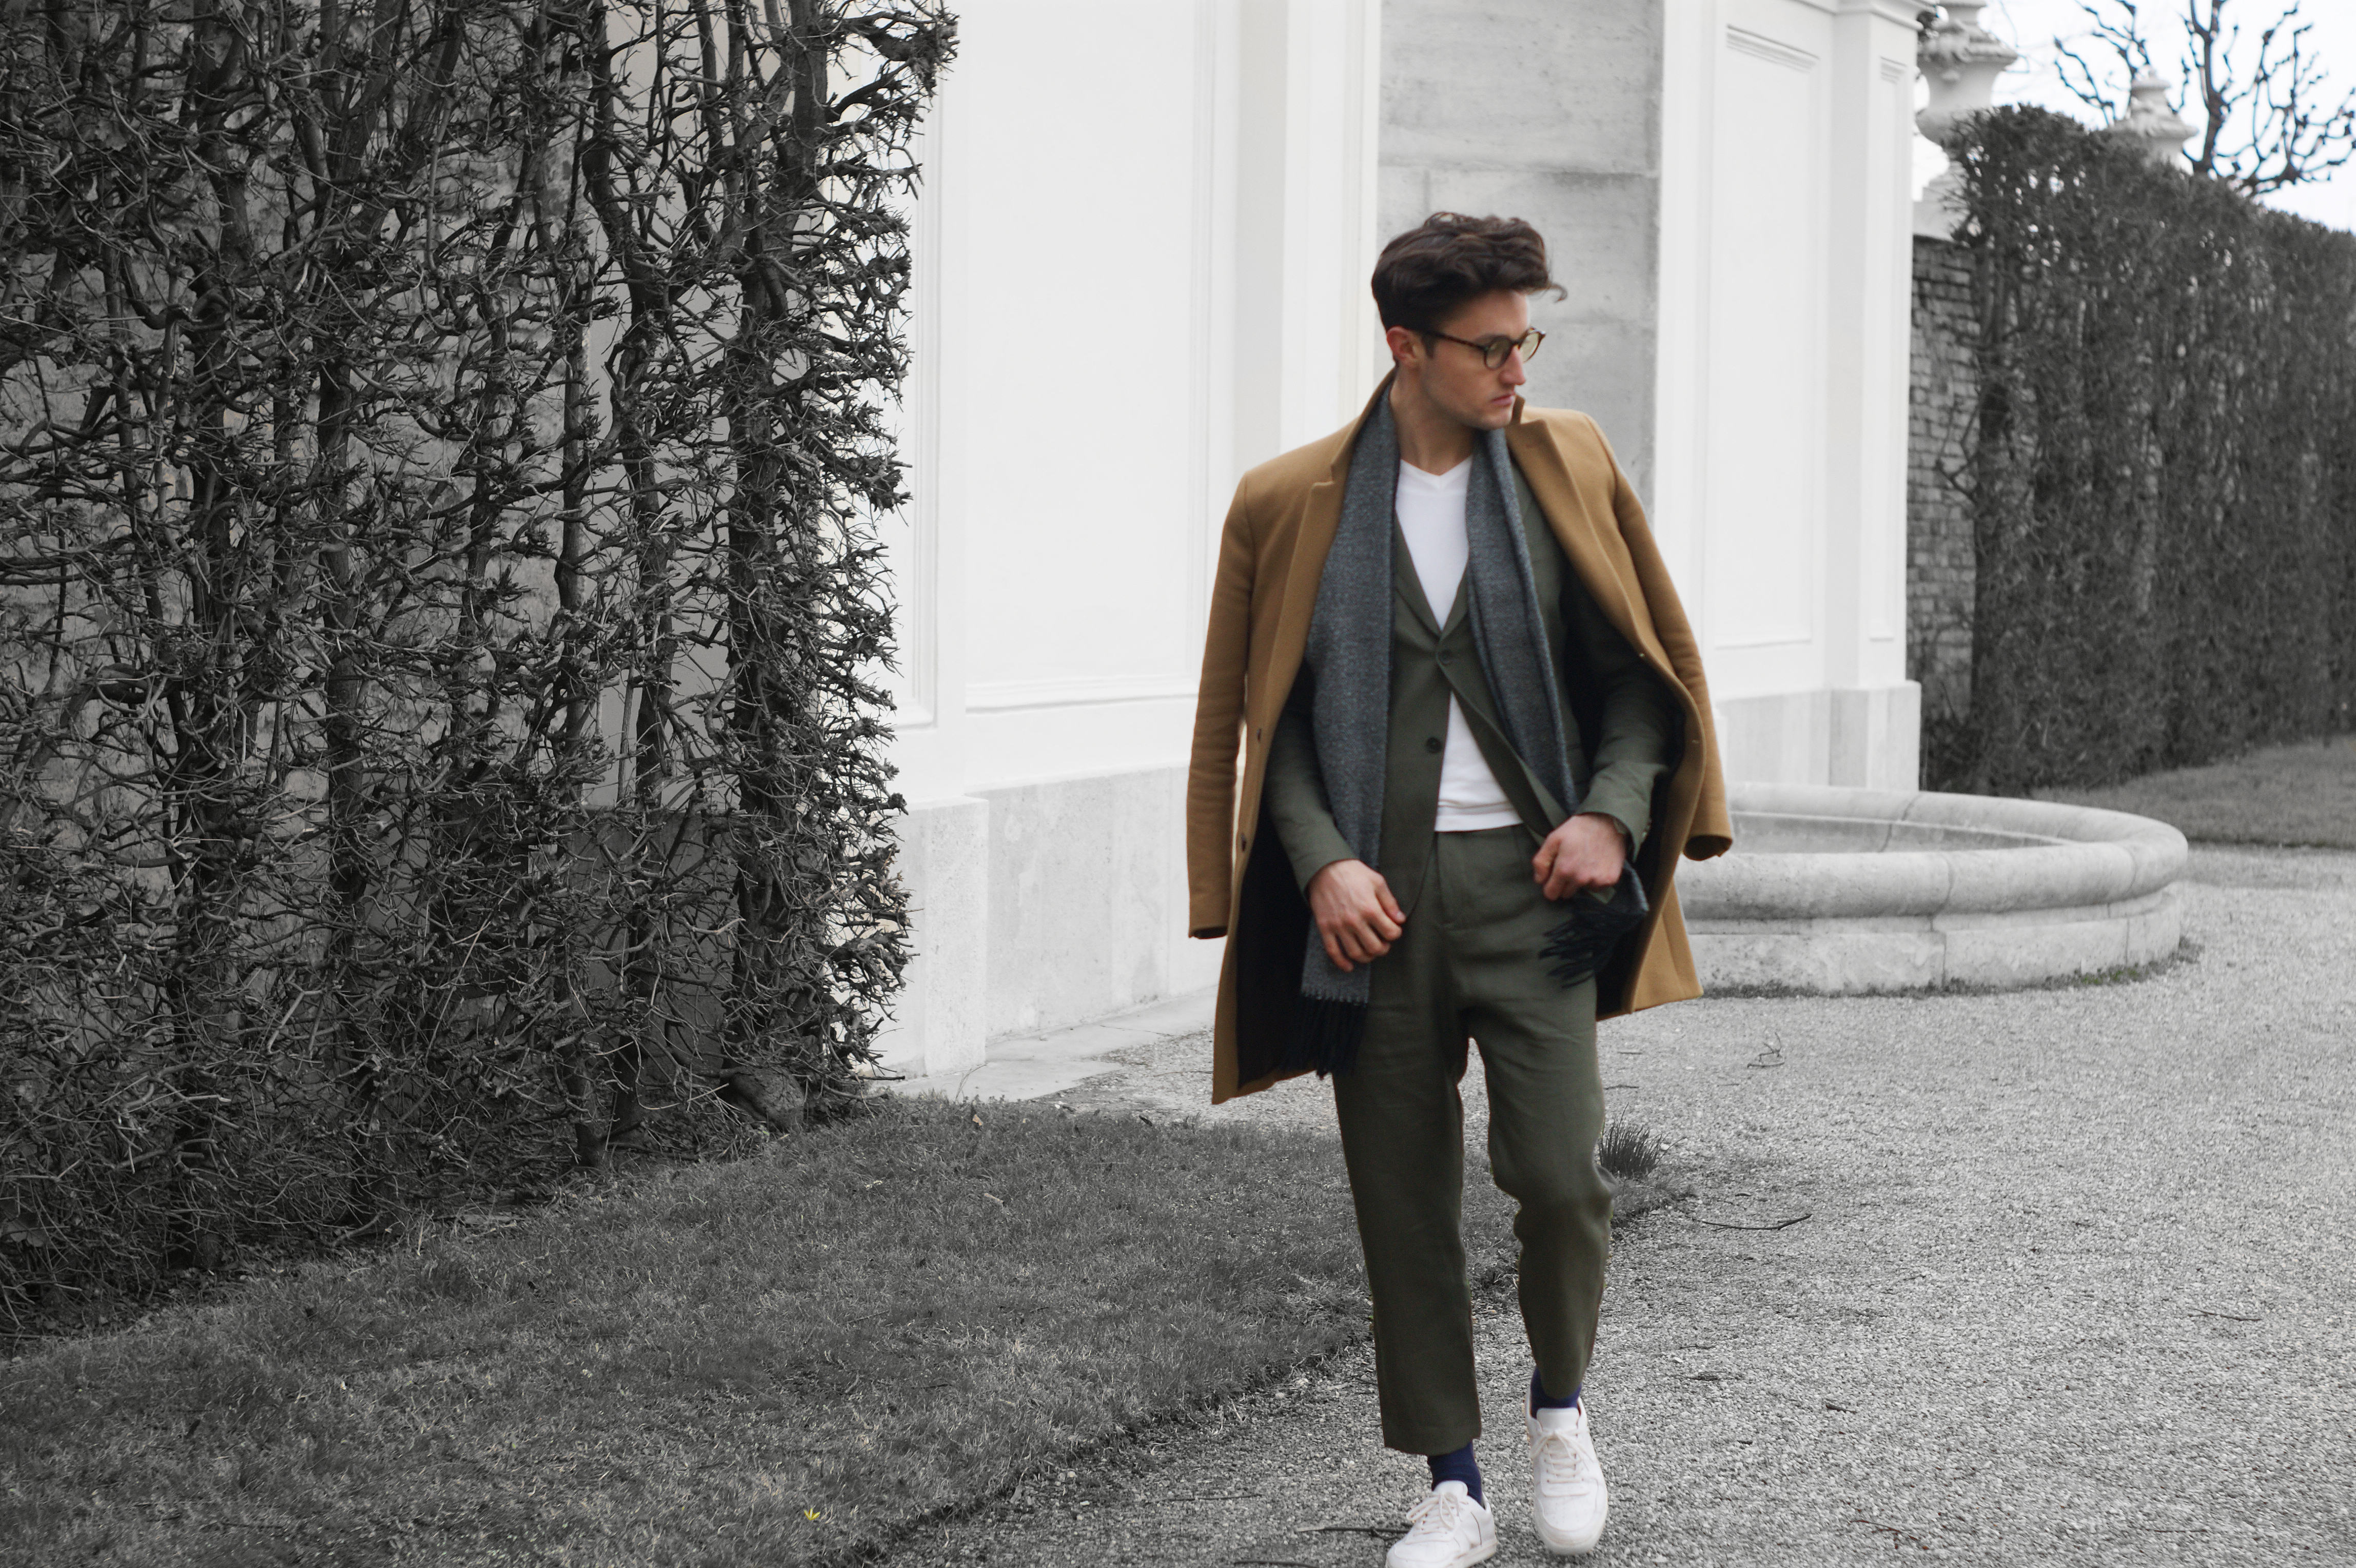 The fashion blogger sarafi are showing their green suit outfit for the day. He is walking around in the park.